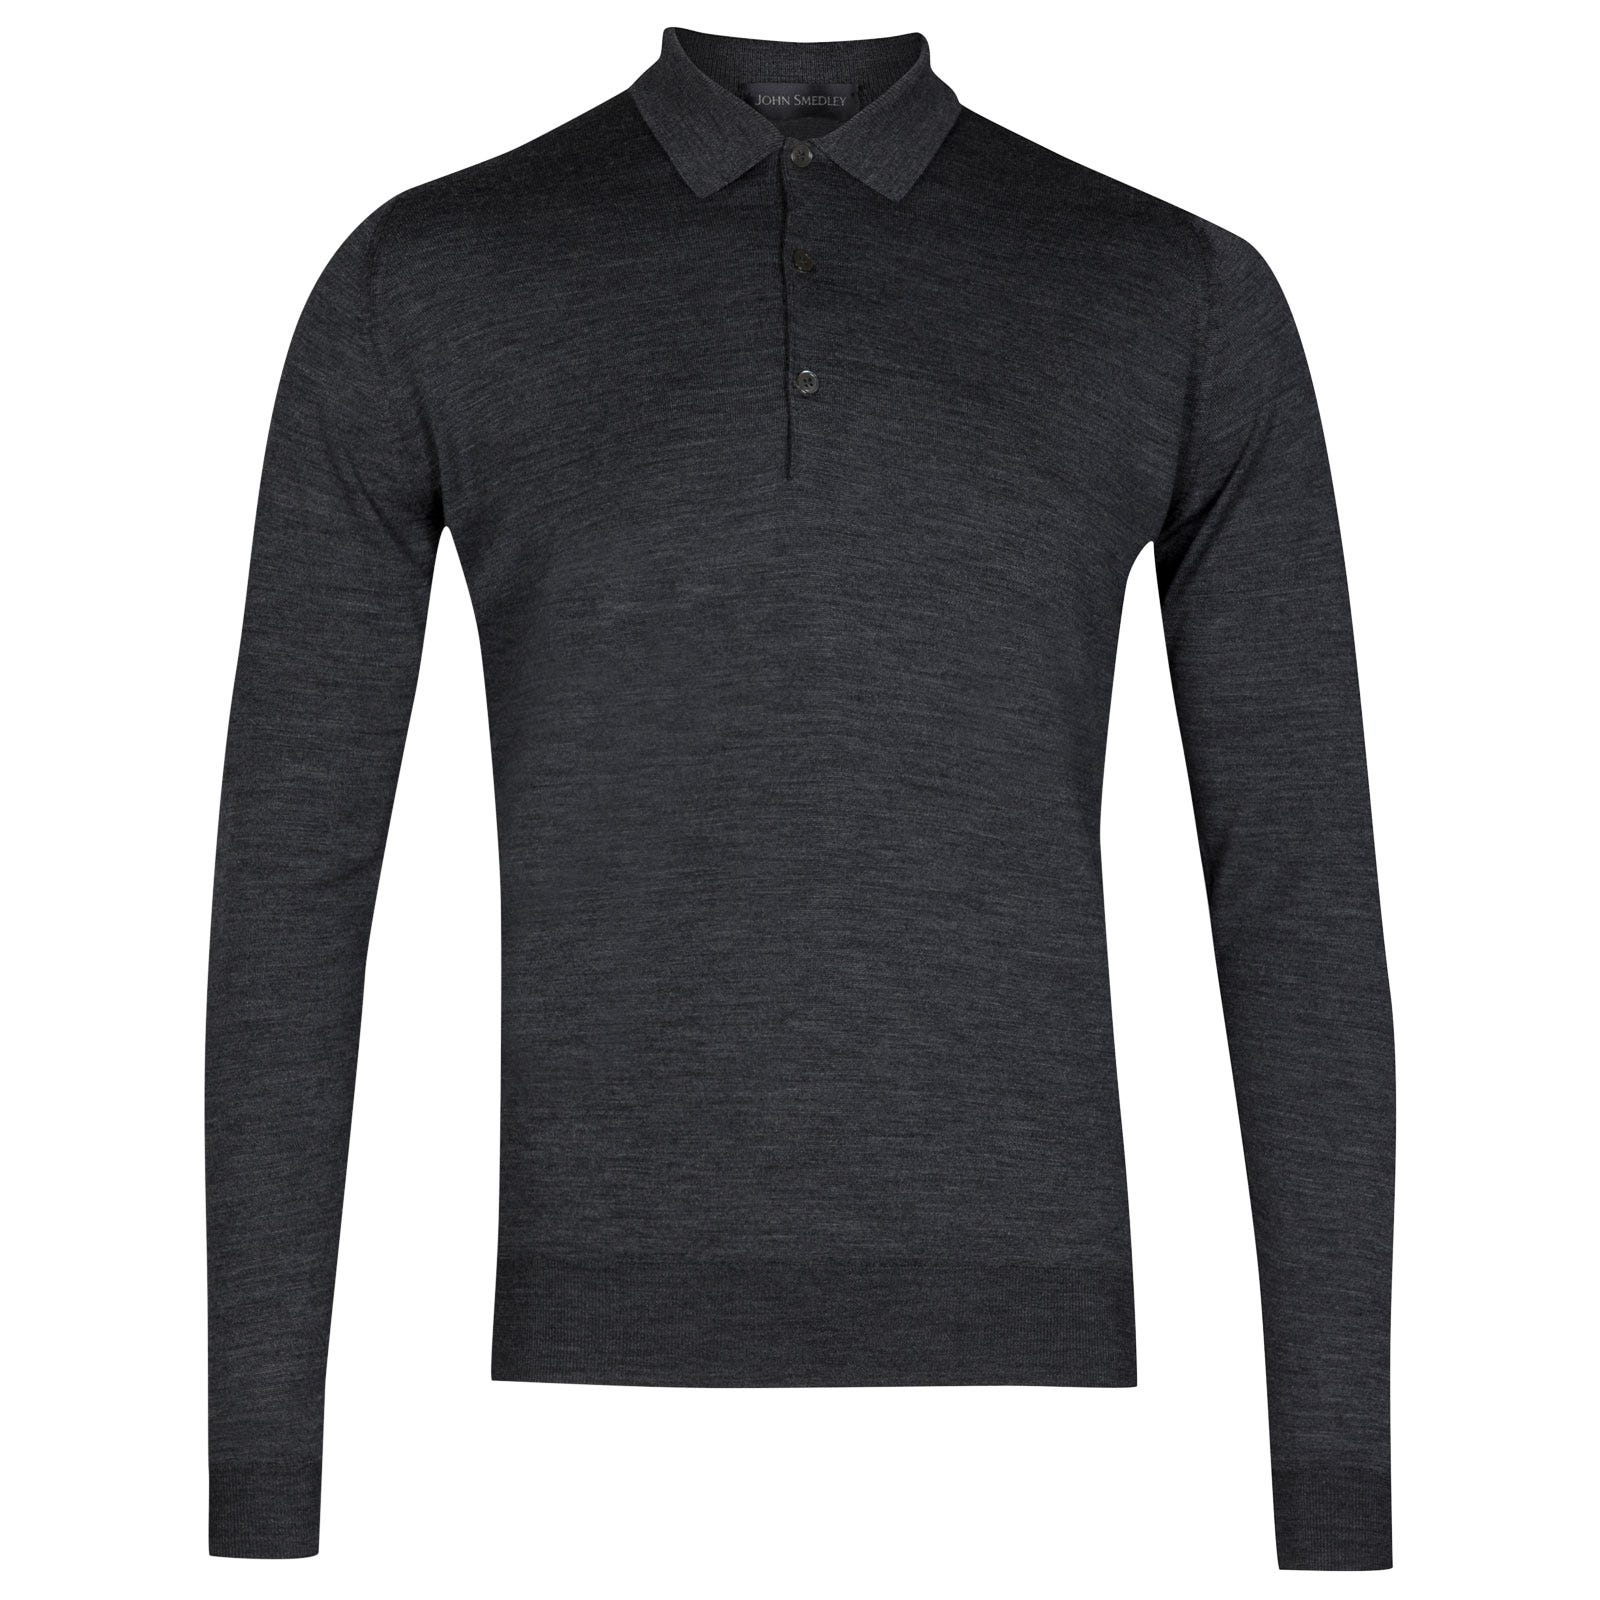 John Smedley belper Merino Wool Shirt in Charcoal-M